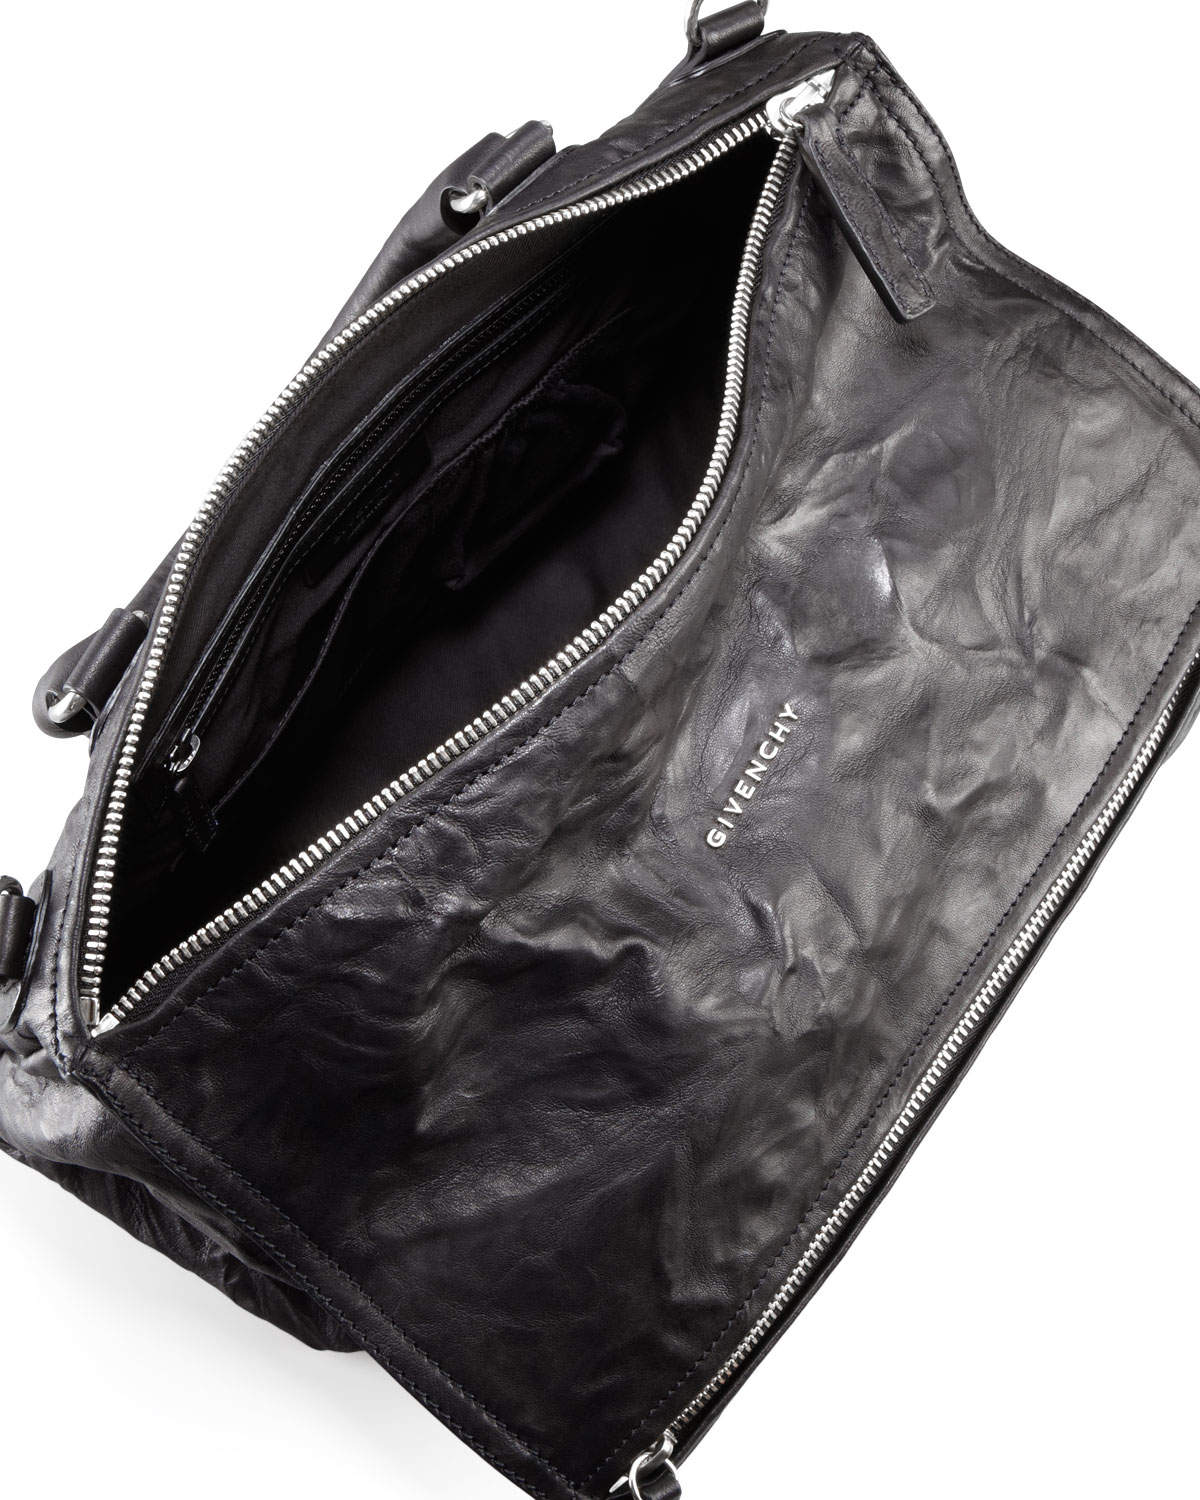 Lyst - Givenchy Pandora Large Leather Satchel Bag in Black ede8b3e8a2e4b